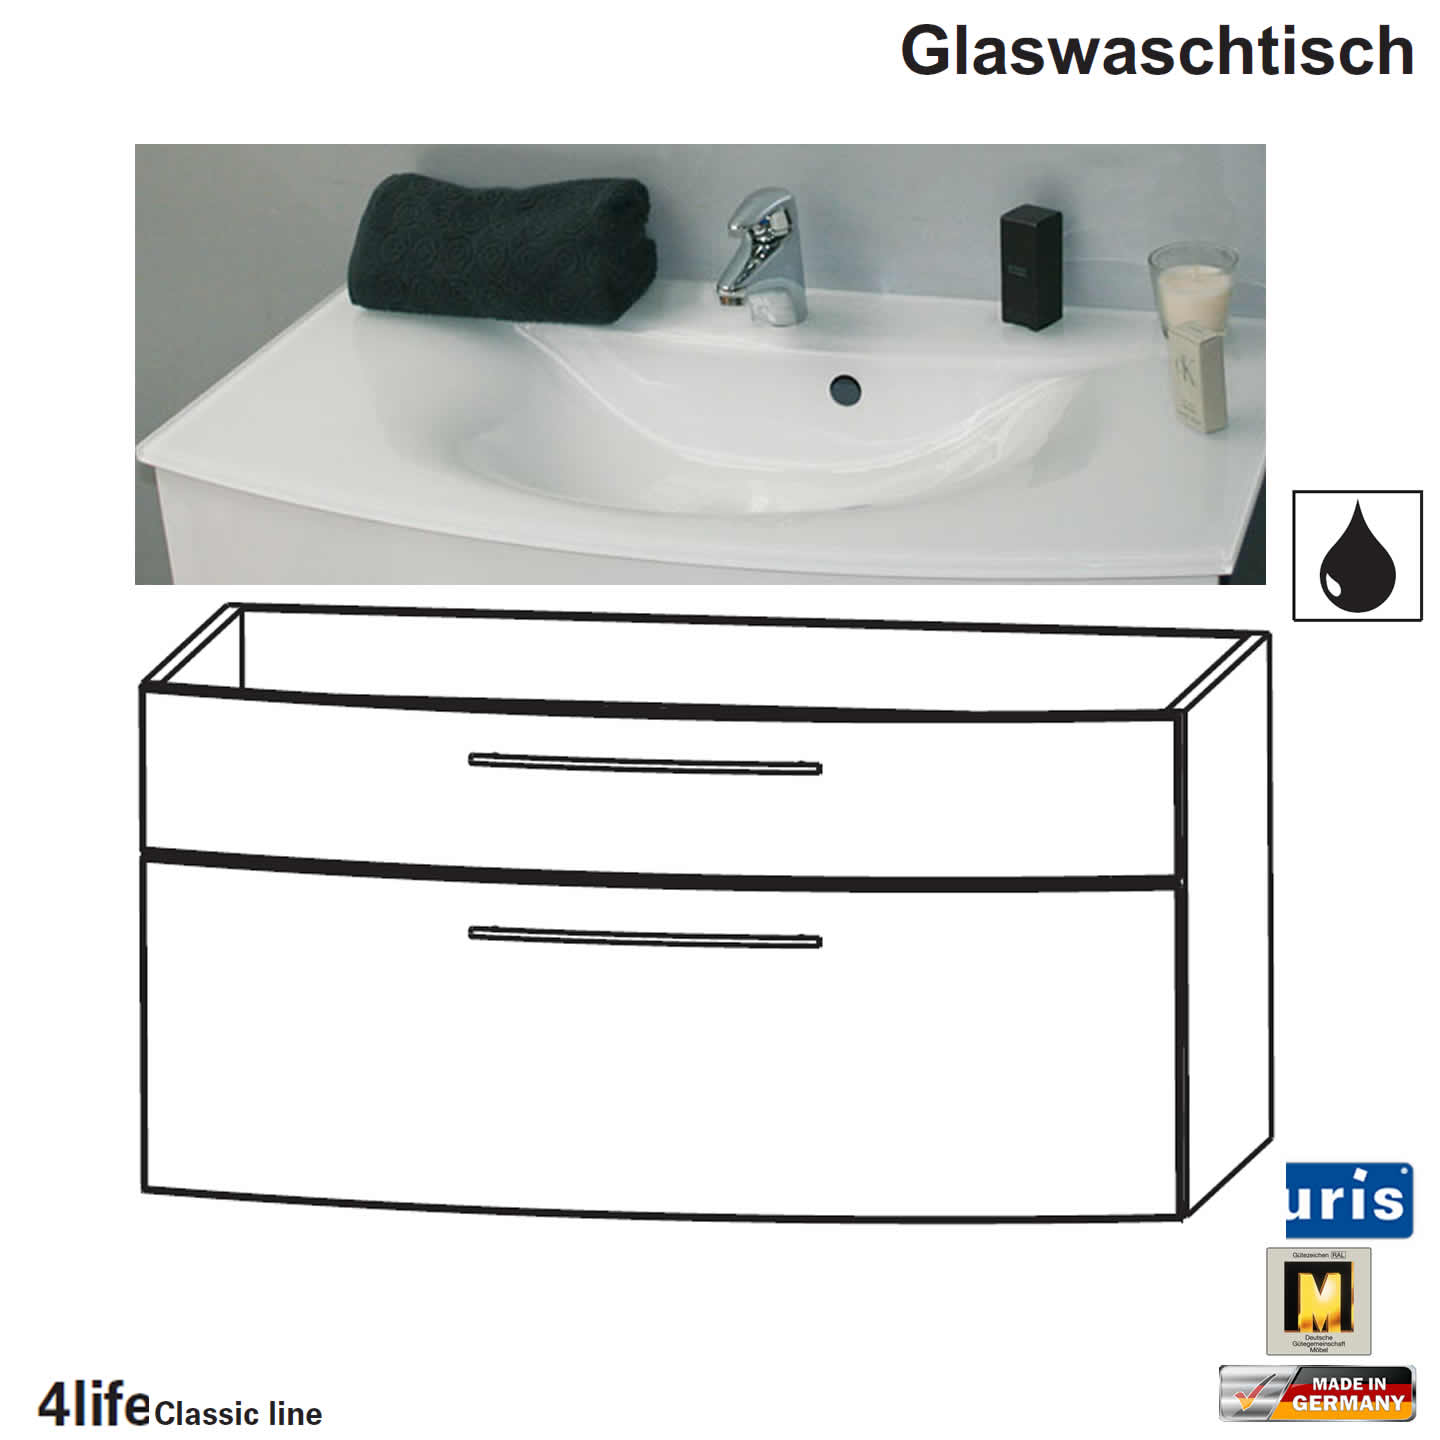 puris classic line badm bel als glas waschtisch set 90 cm 2 ausz ge impulsbad. Black Bedroom Furniture Sets. Home Design Ideas